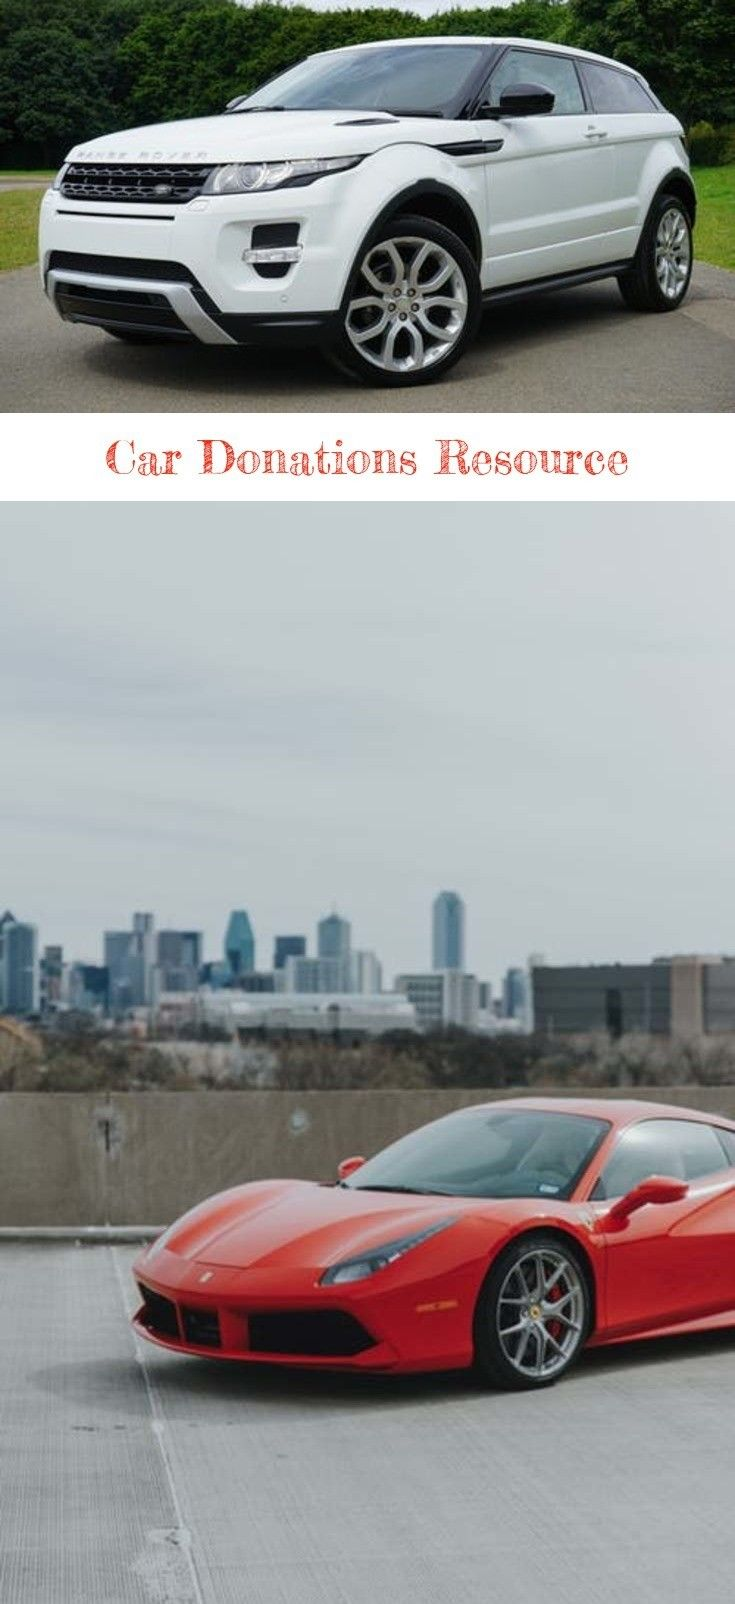 Car Donations In California With Images Car Donate Car Charity Cars